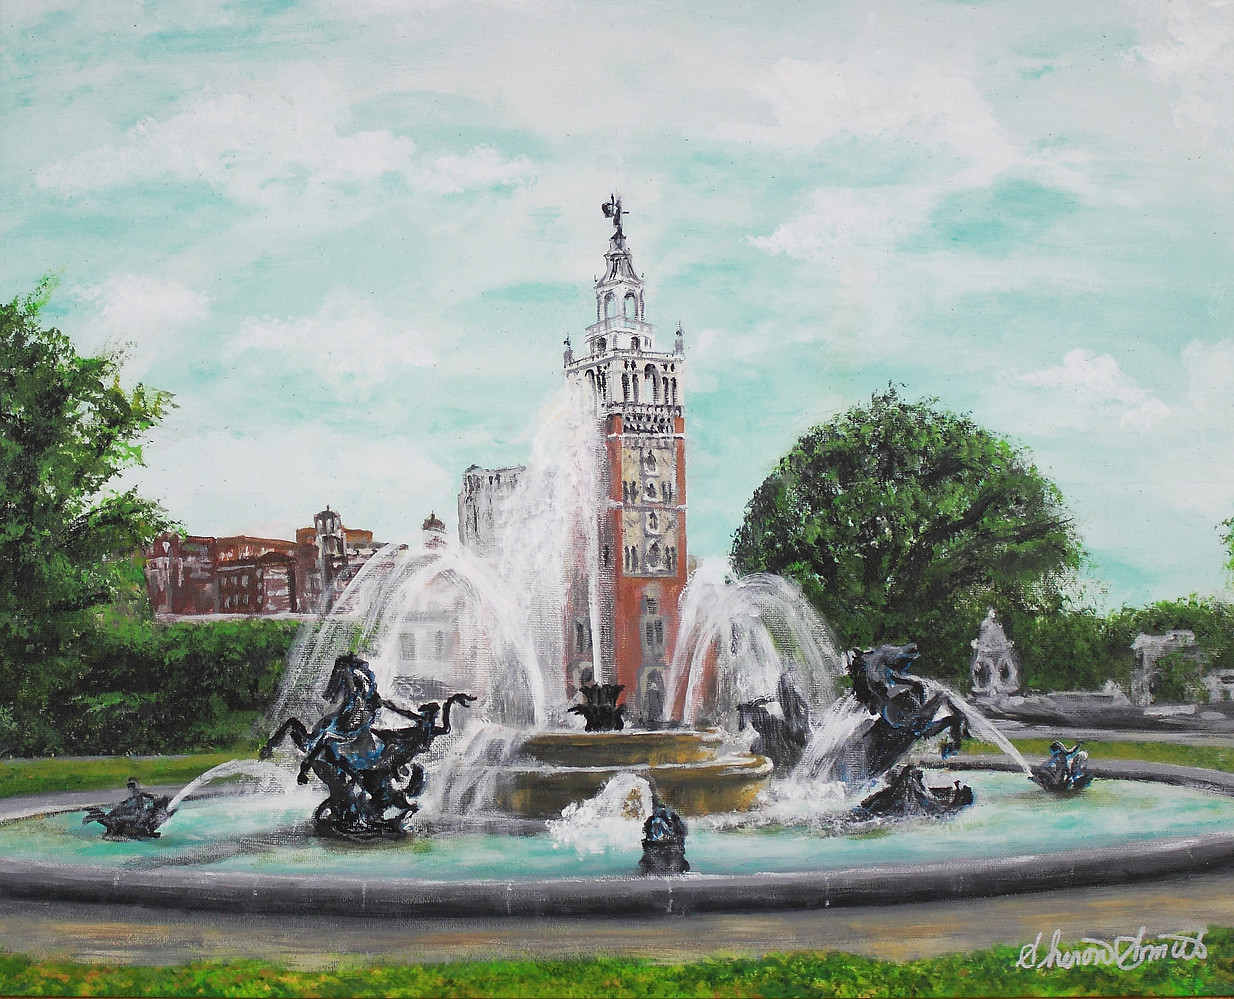 JC Nichols Fountain 16x20.JPG